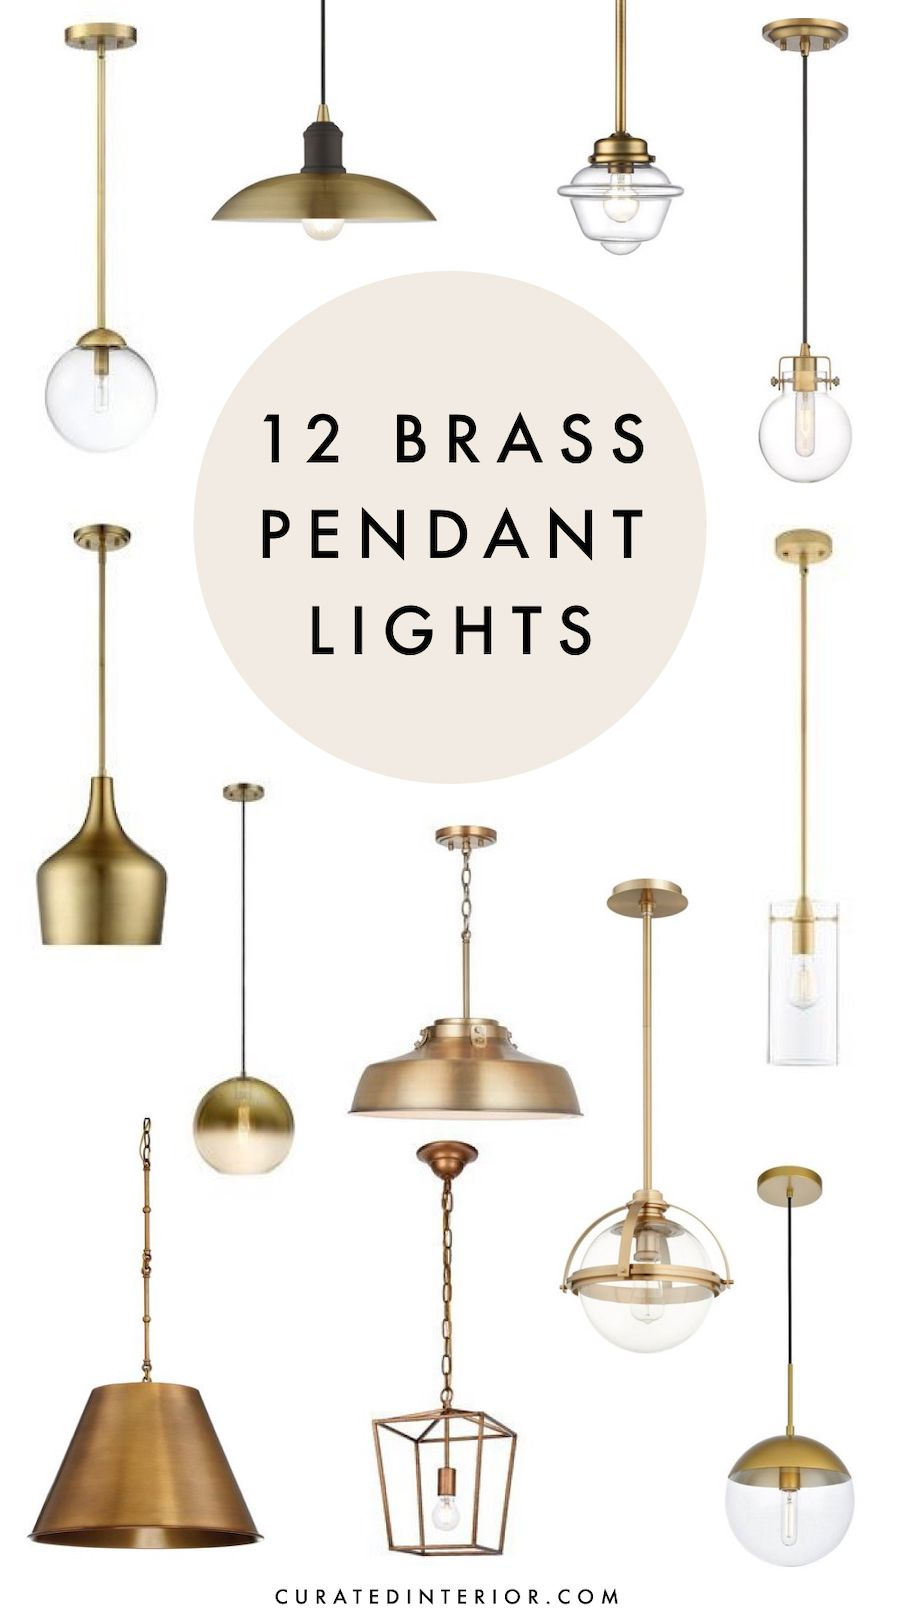 Pin On All Things Home Decor Diy Home Decor Brass pendant light kitchen